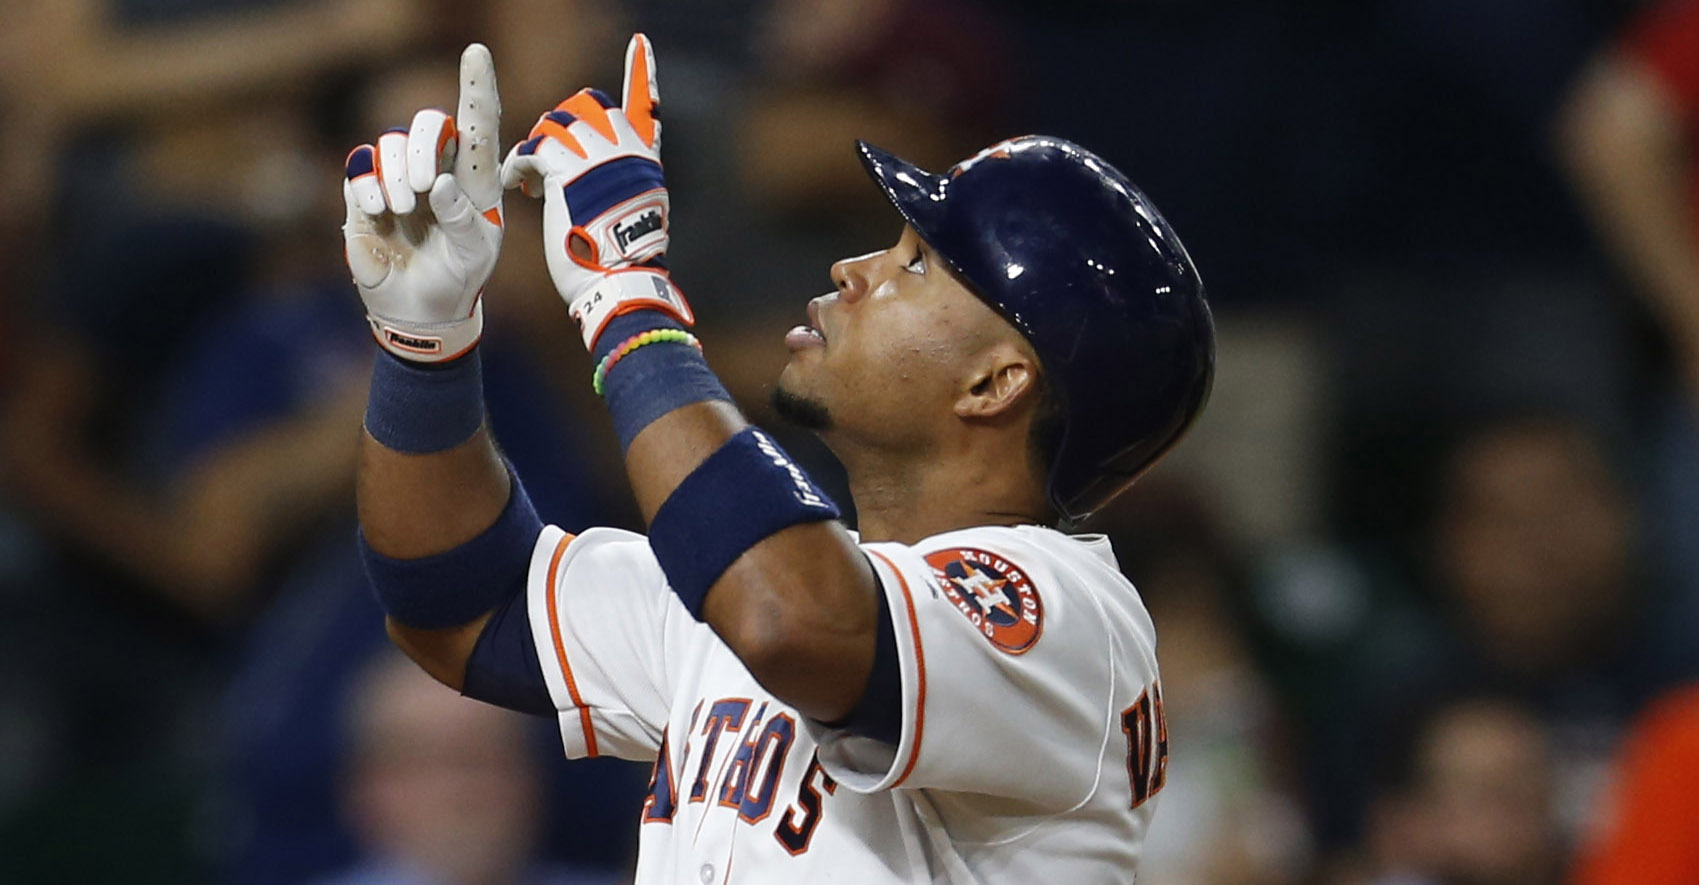 Former Astros players Luis Valbuena, Jose Castillo die in car accident